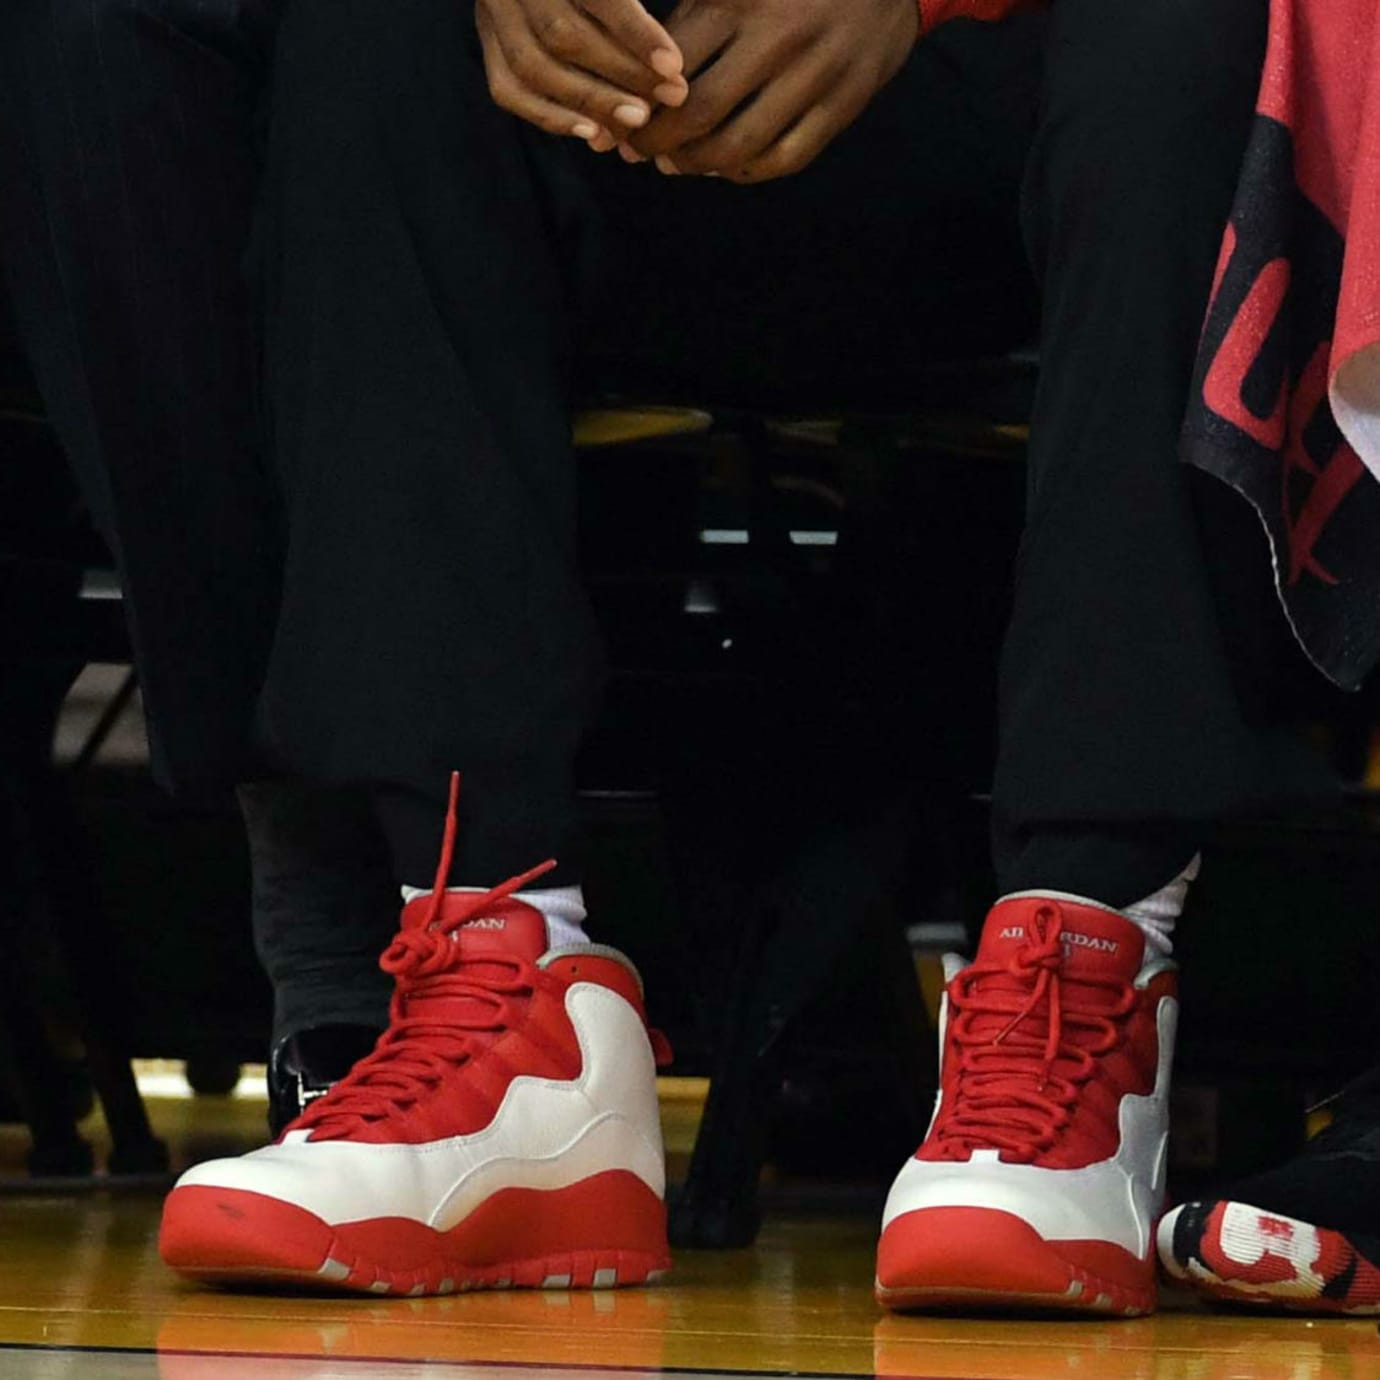 Chris Paul Air Jordan 10 X Rockets PE On-Foot